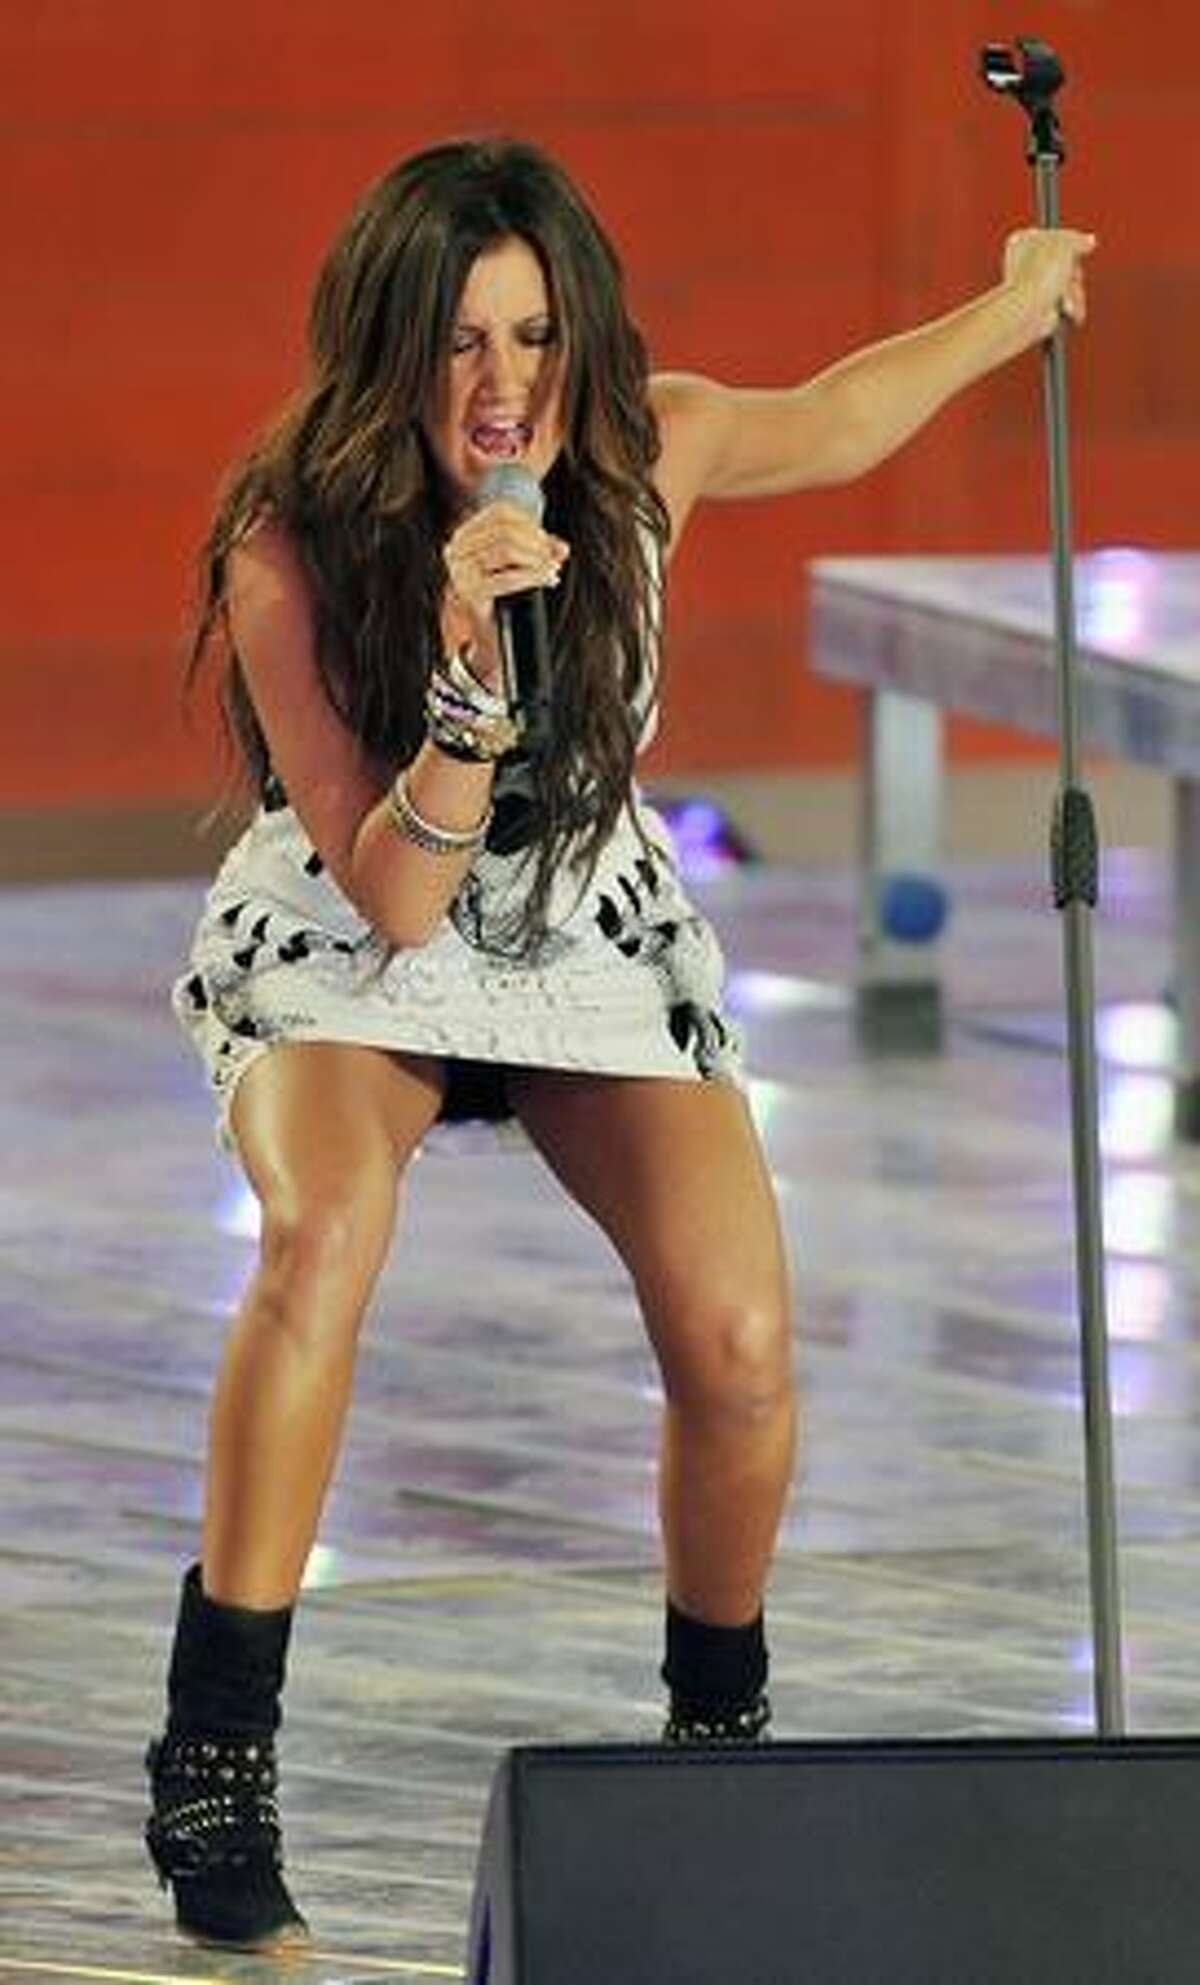 Us actress and singer Ashley Tisdale performs on stage at the German television show